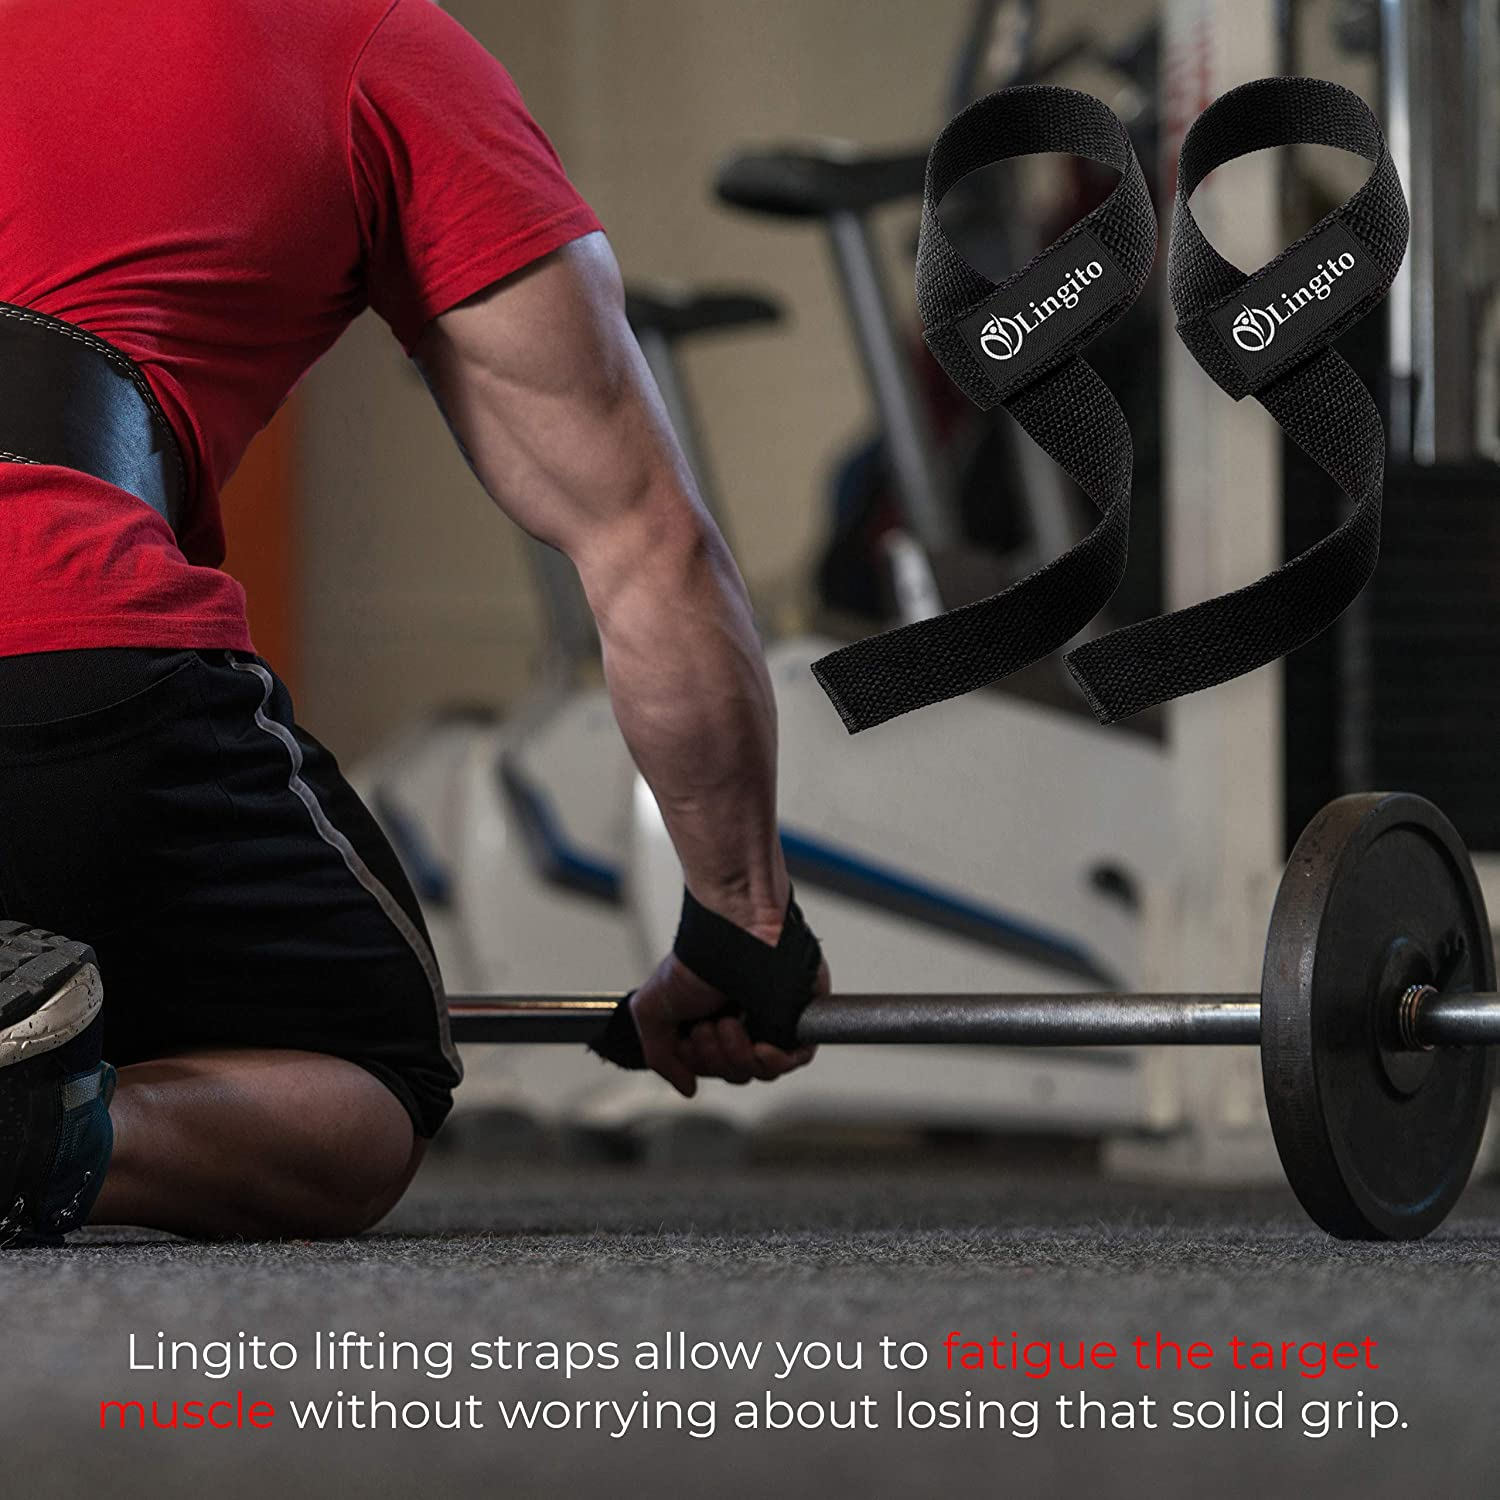 Lingito Lifting Neoprene Padded Straps Instantly Life More During Weightlifting /& Build More Muscle